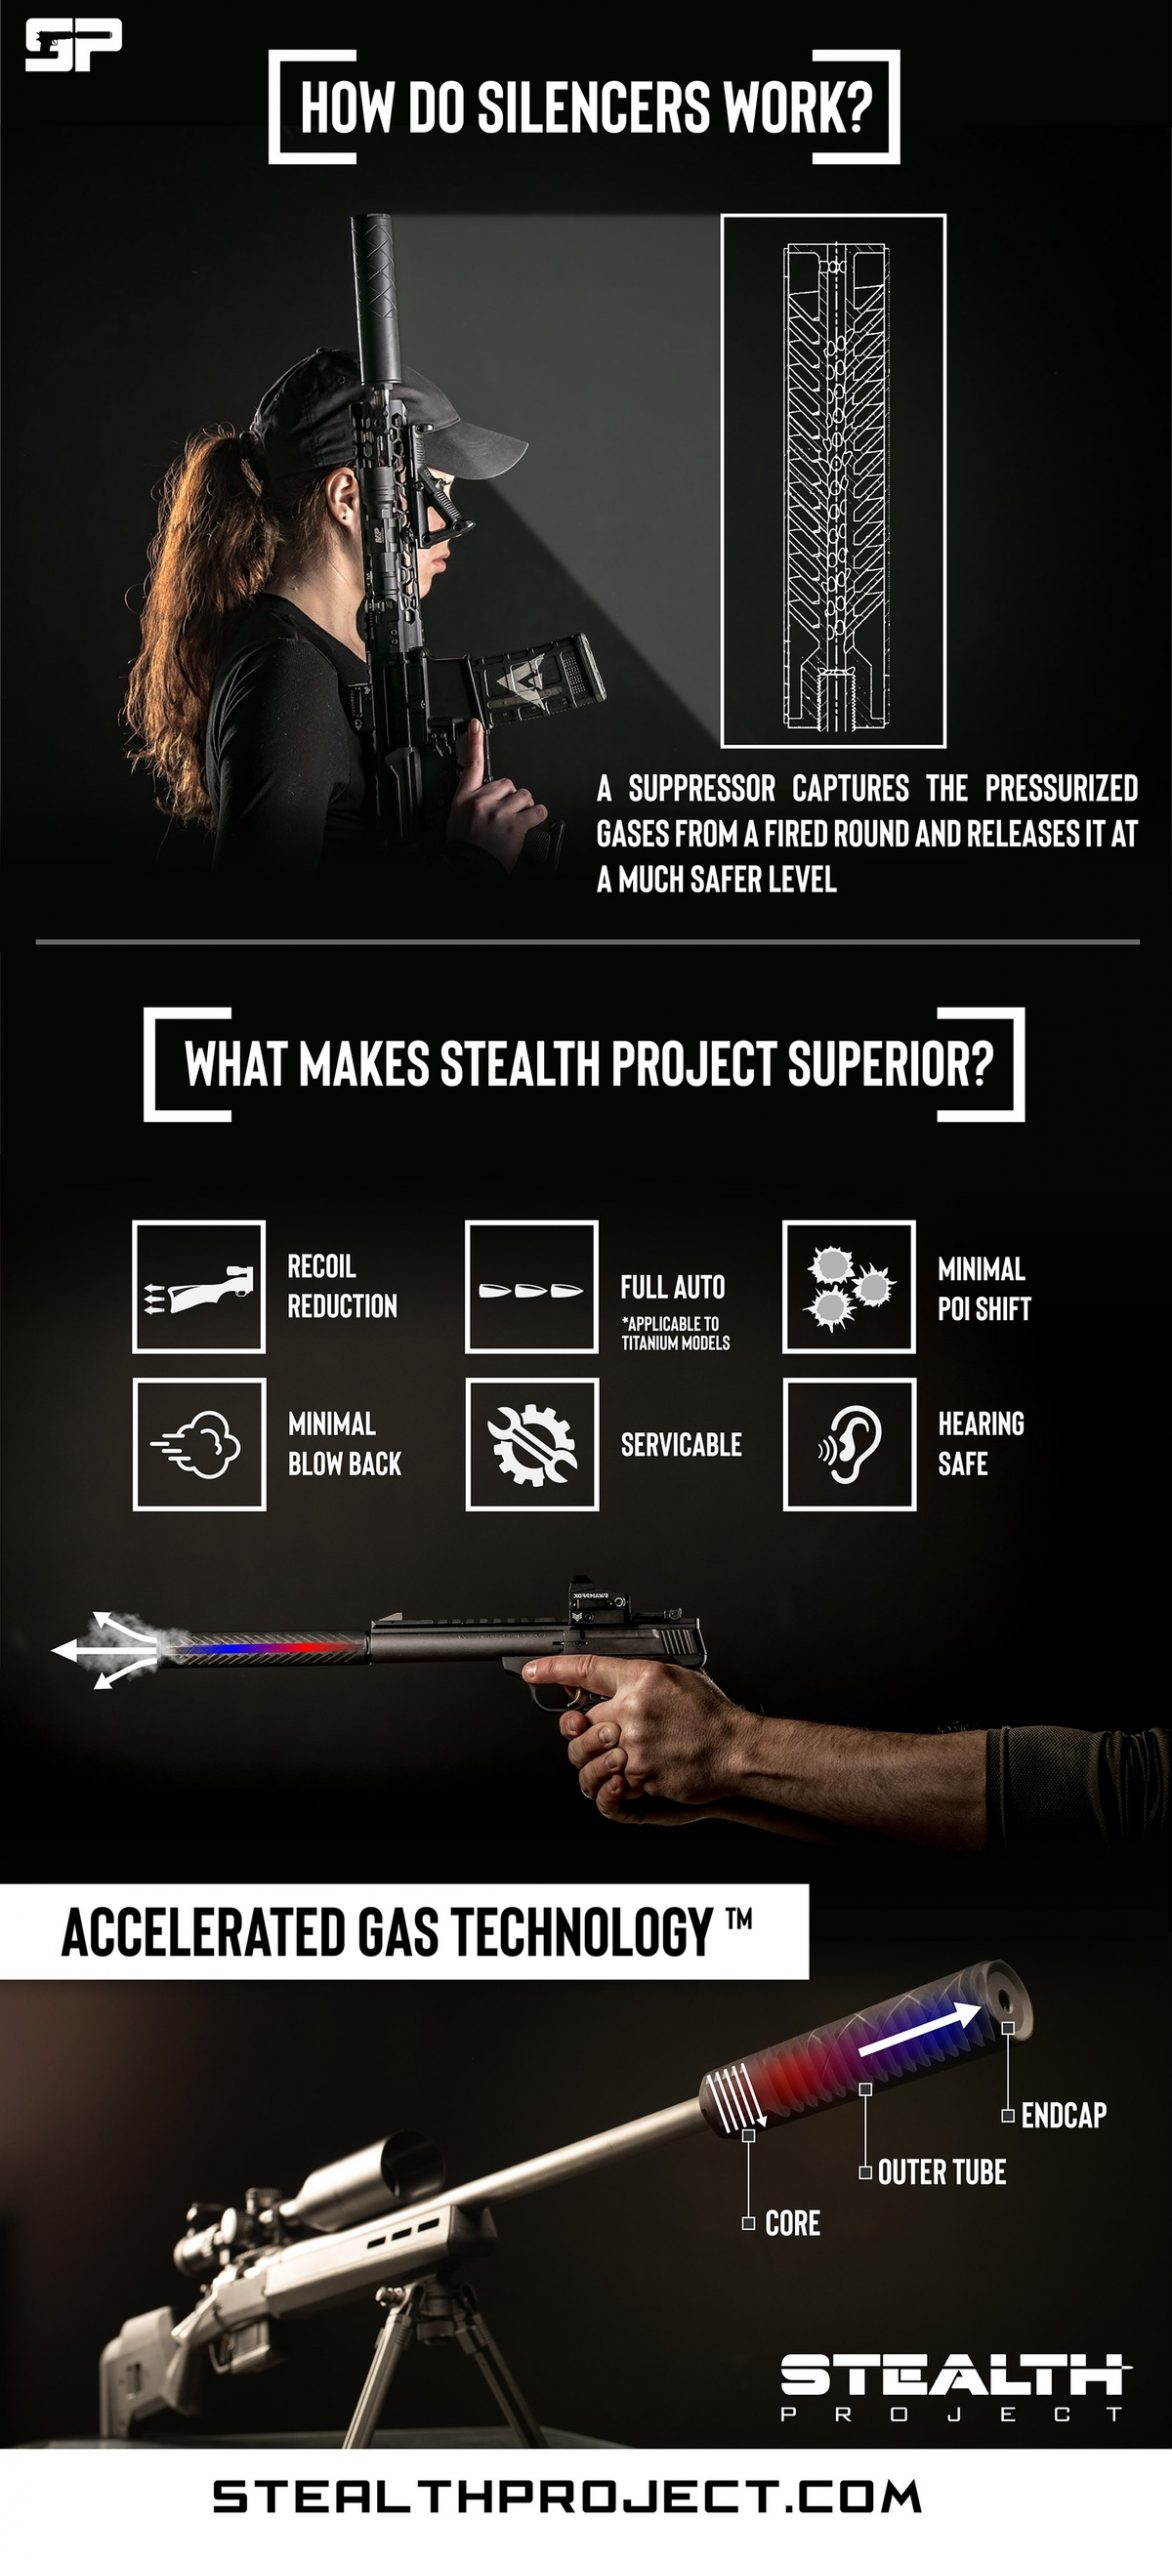 Stealth Project Suppressor Technology